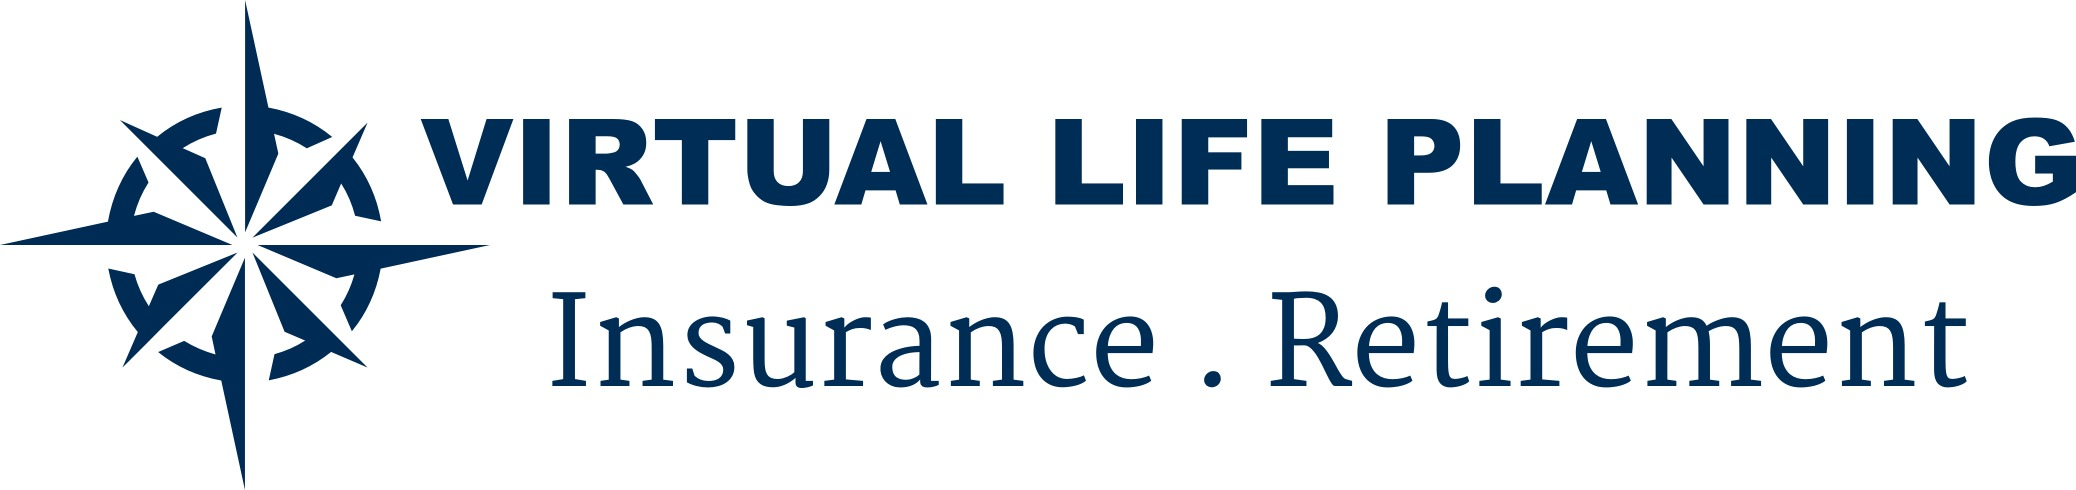 Instant Life Insurance Quote Virtual Life Planning  Term Life Quotes